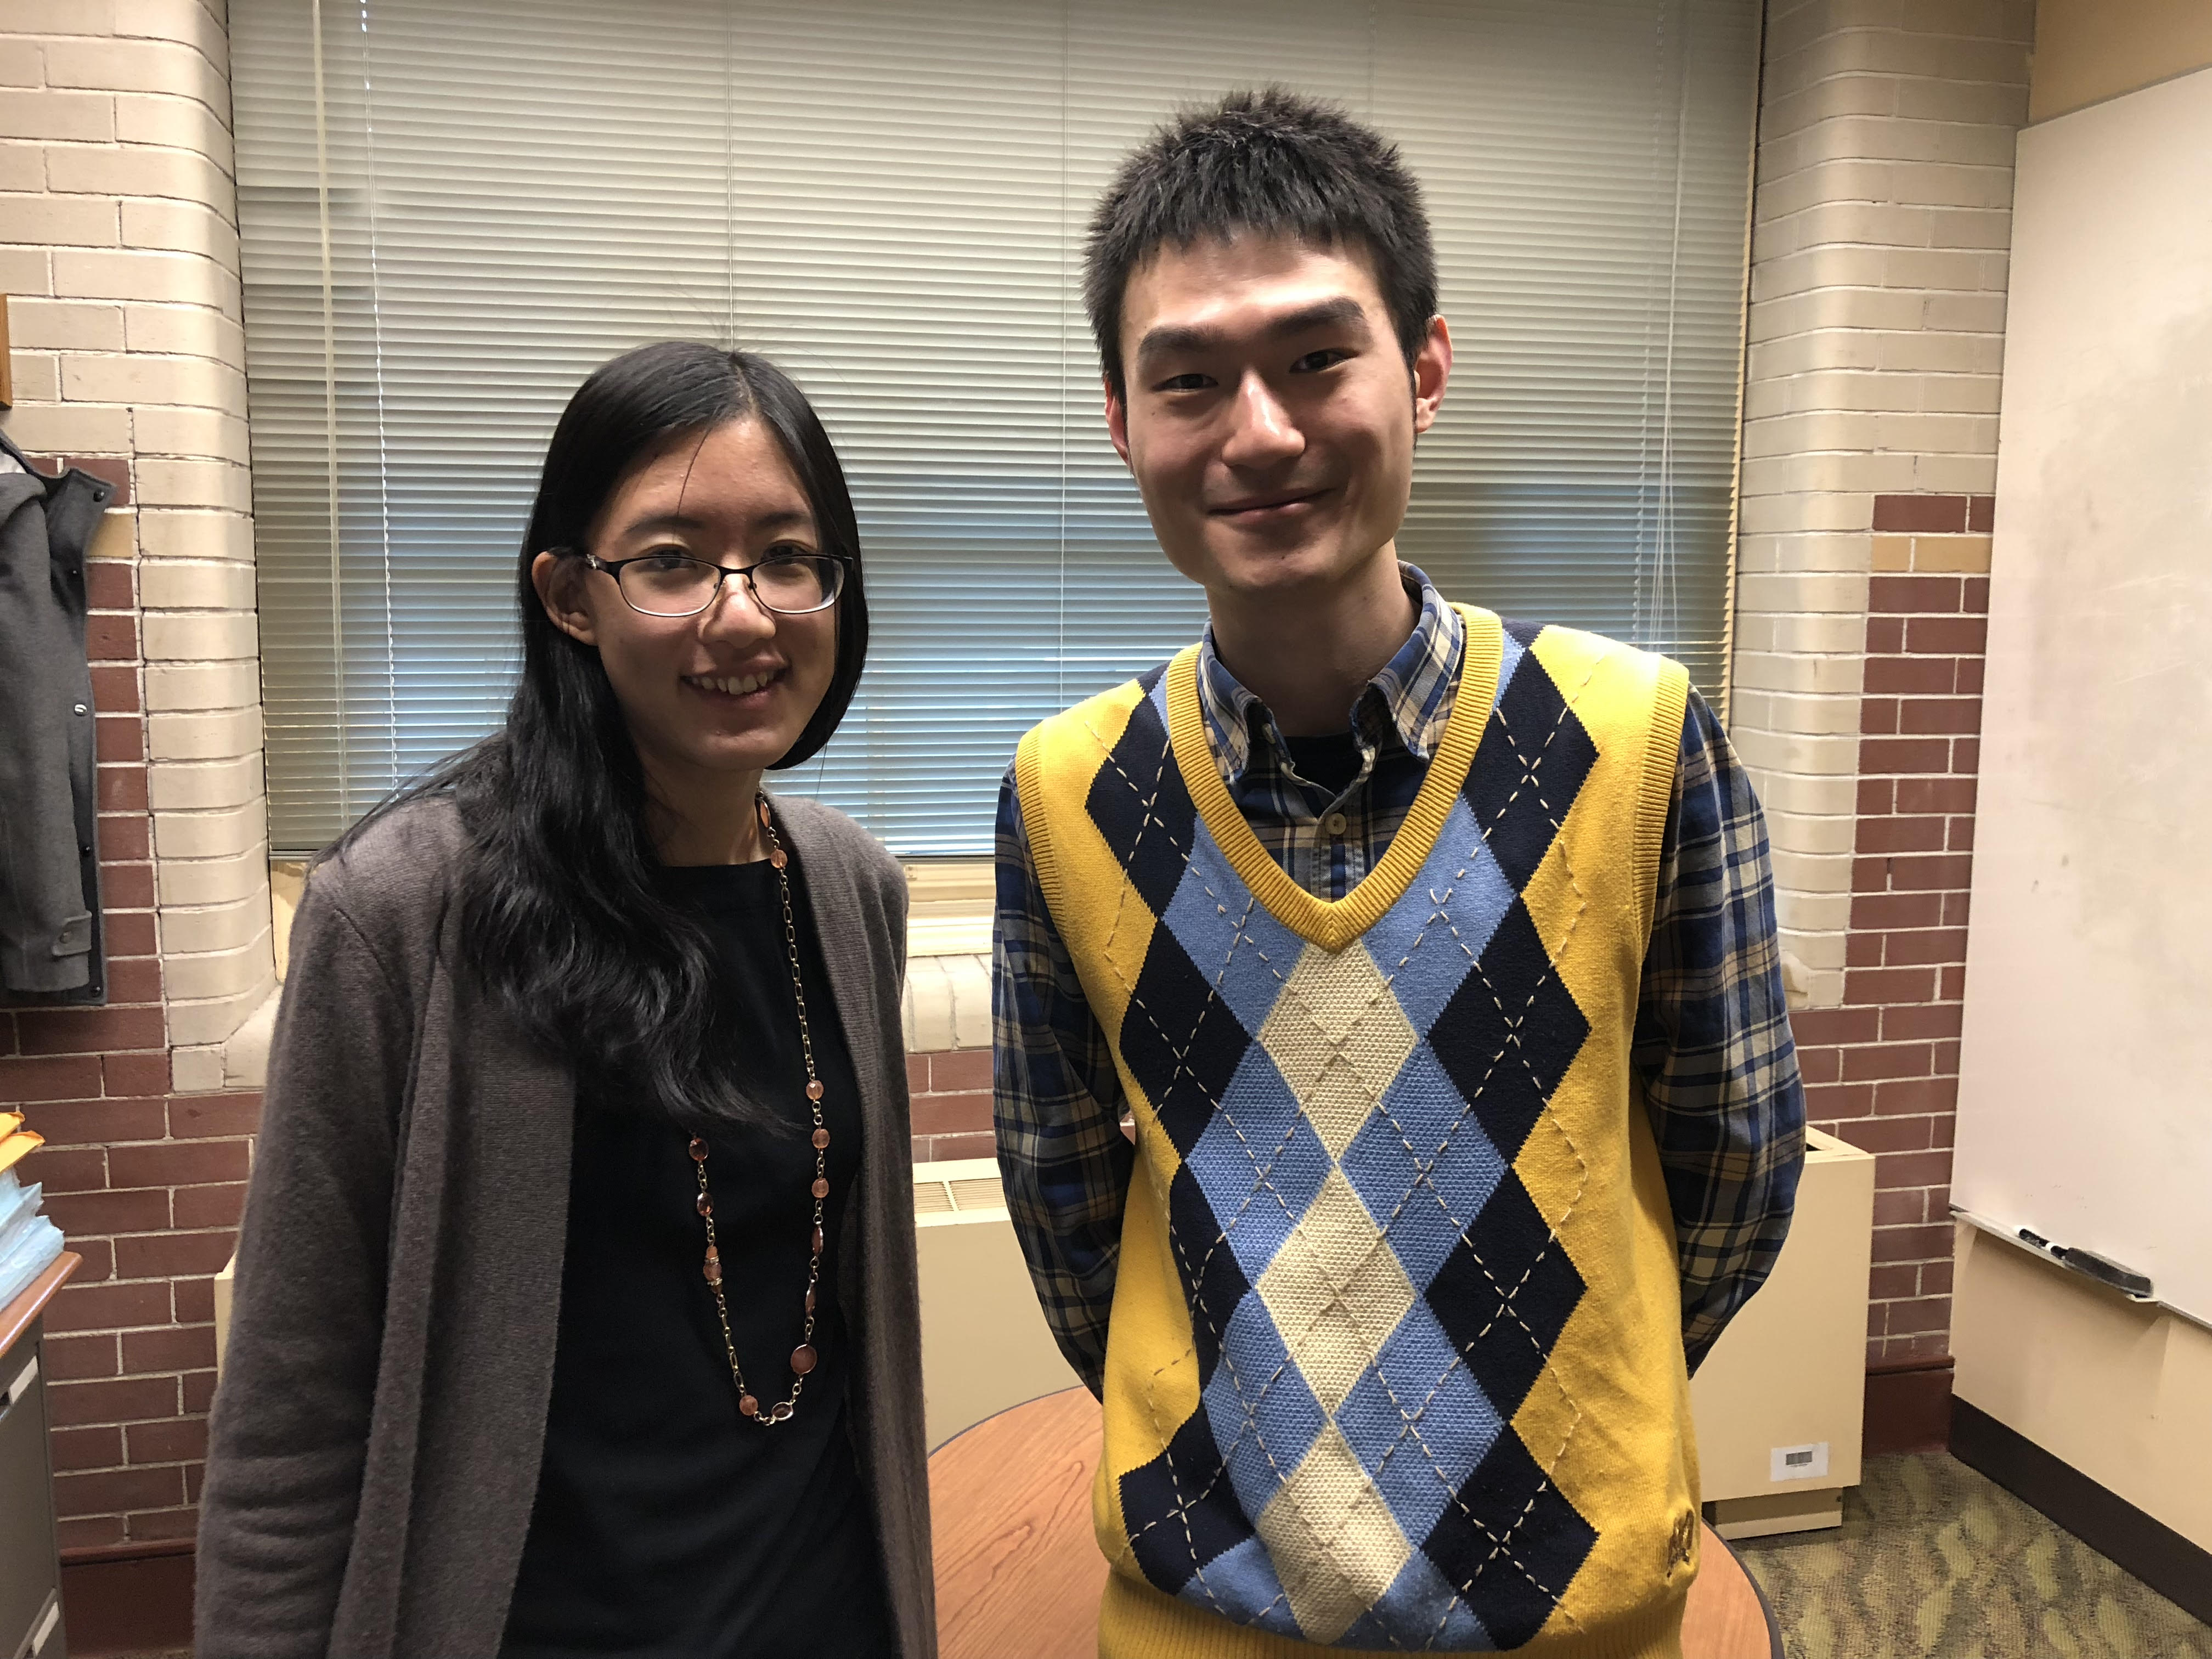 Joe-Wong poses with Jiang in her office